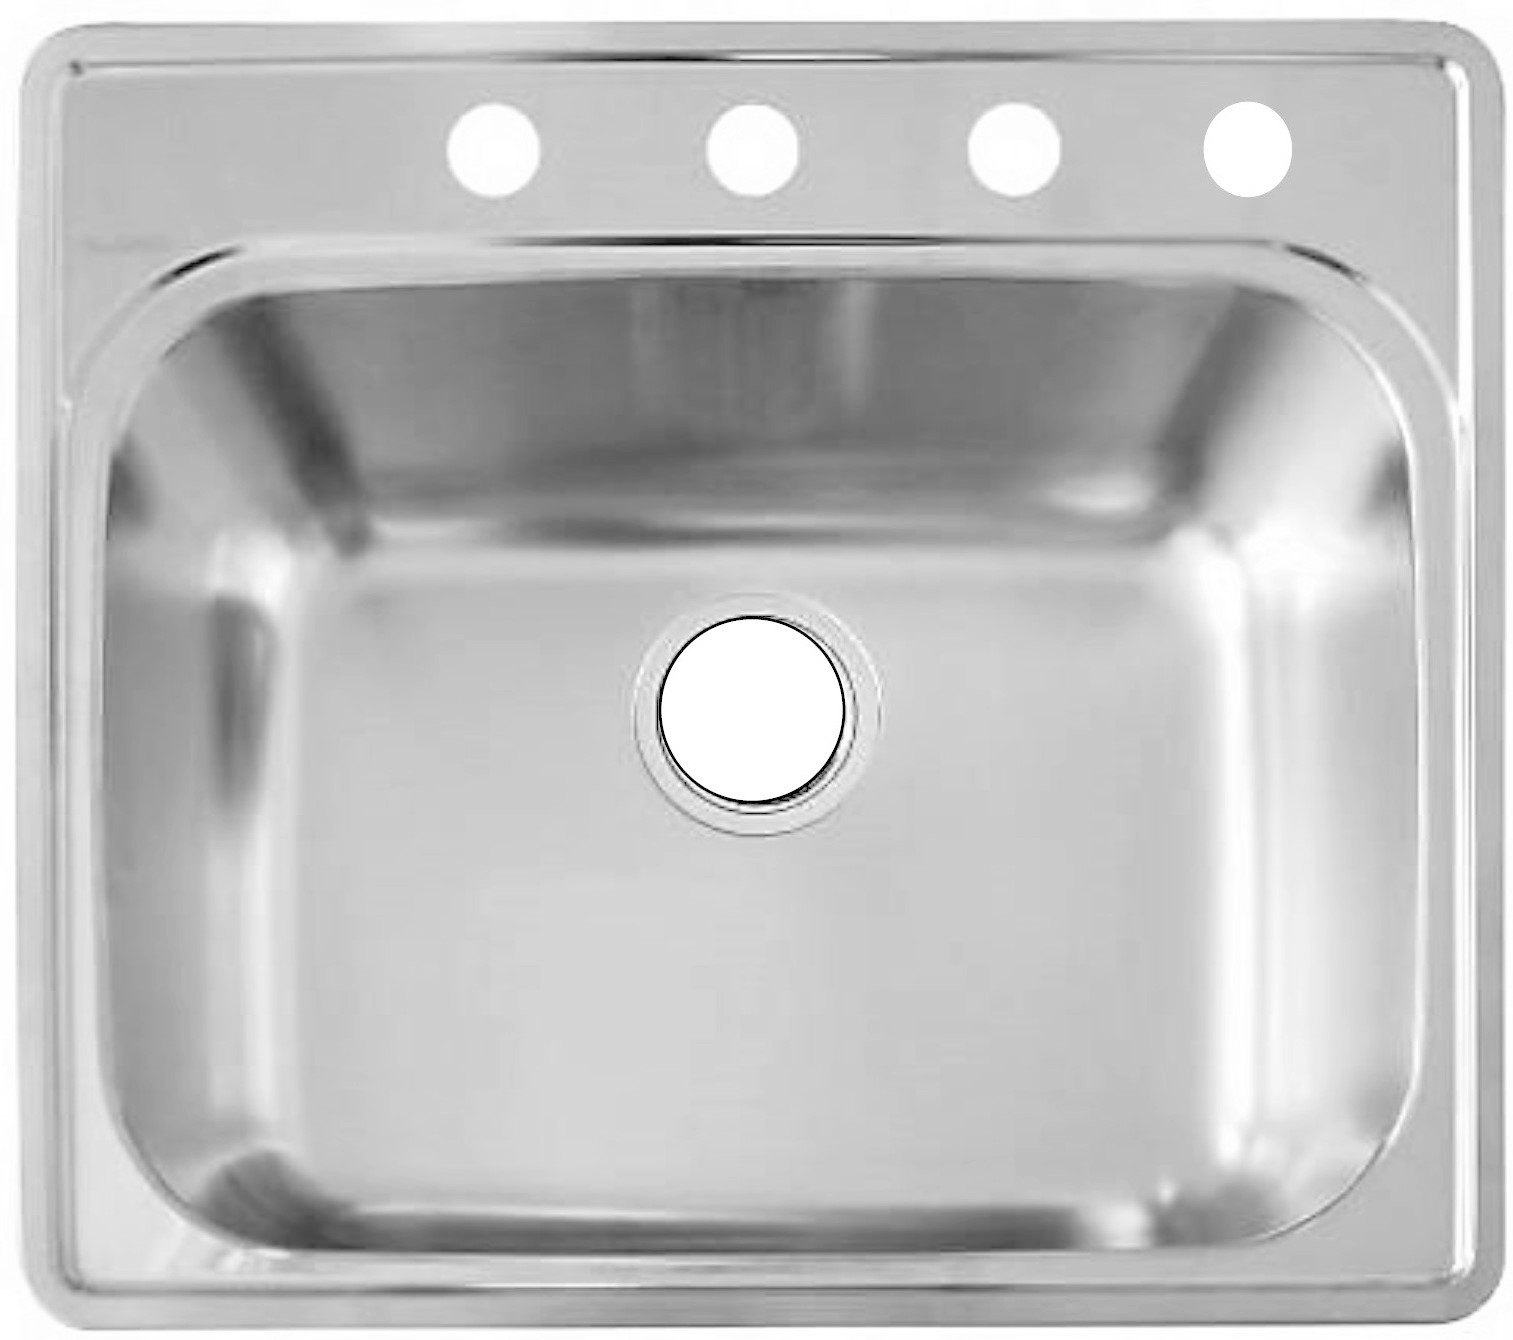 as 25 22 8 20g single bowl topmount builder stainless steel kitchen sink single bowl kitchen sink Topmount SS Kitchen Sink